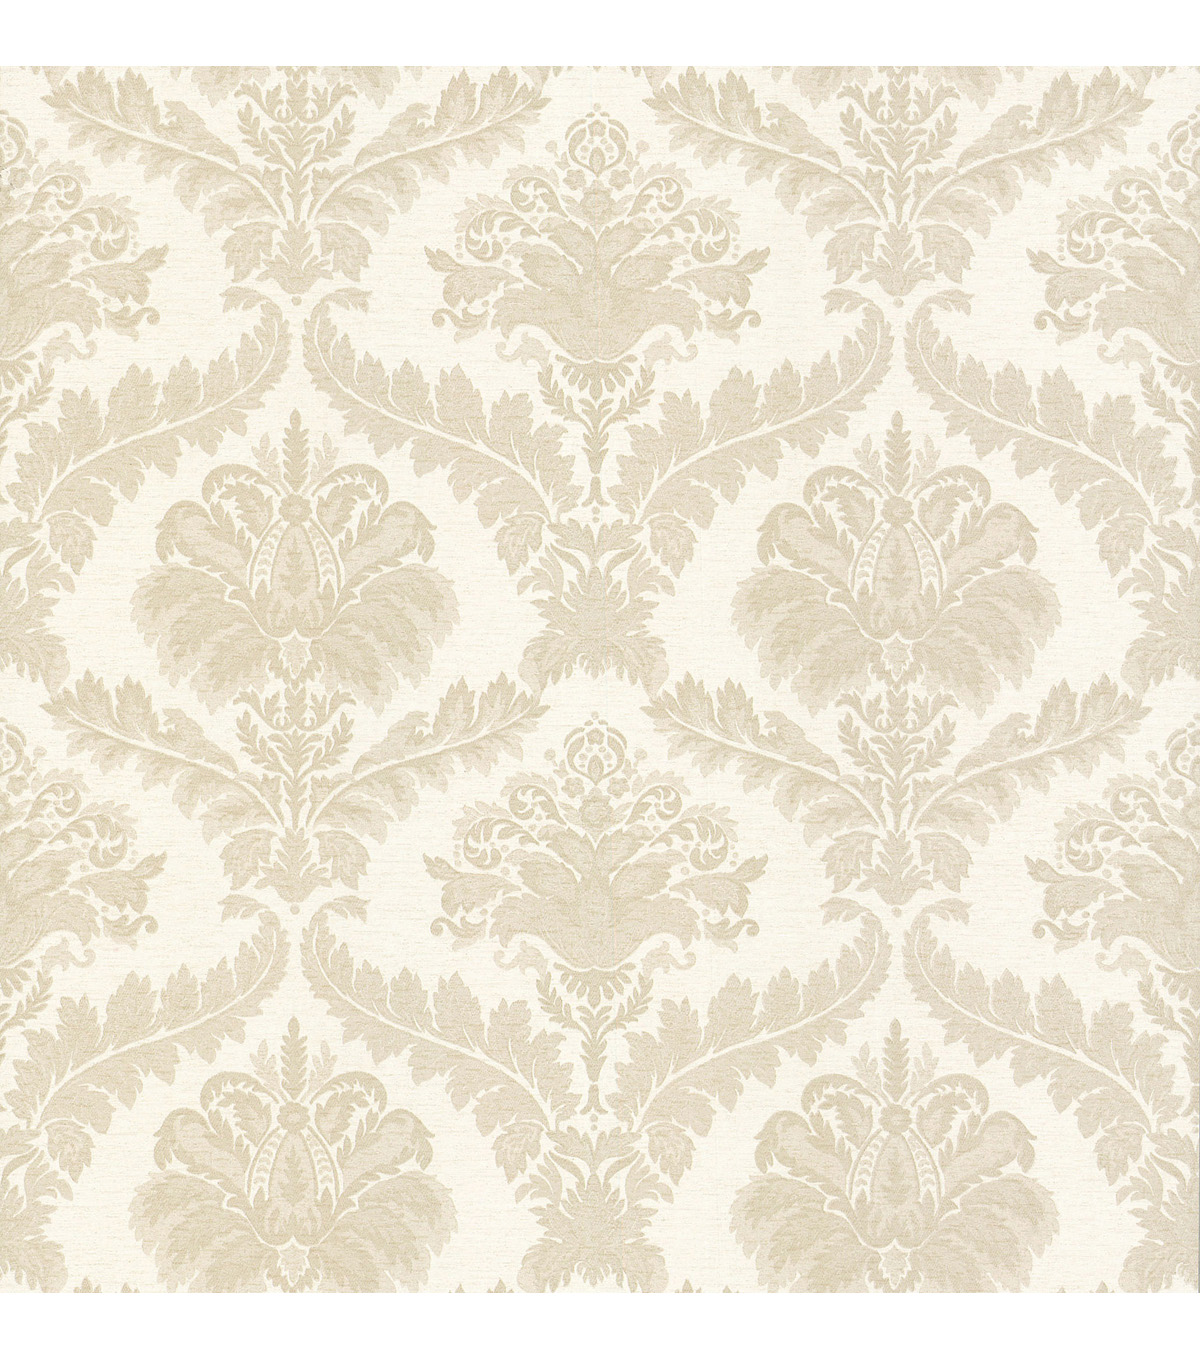 Arabella Cream Damask Wallpaper Sample